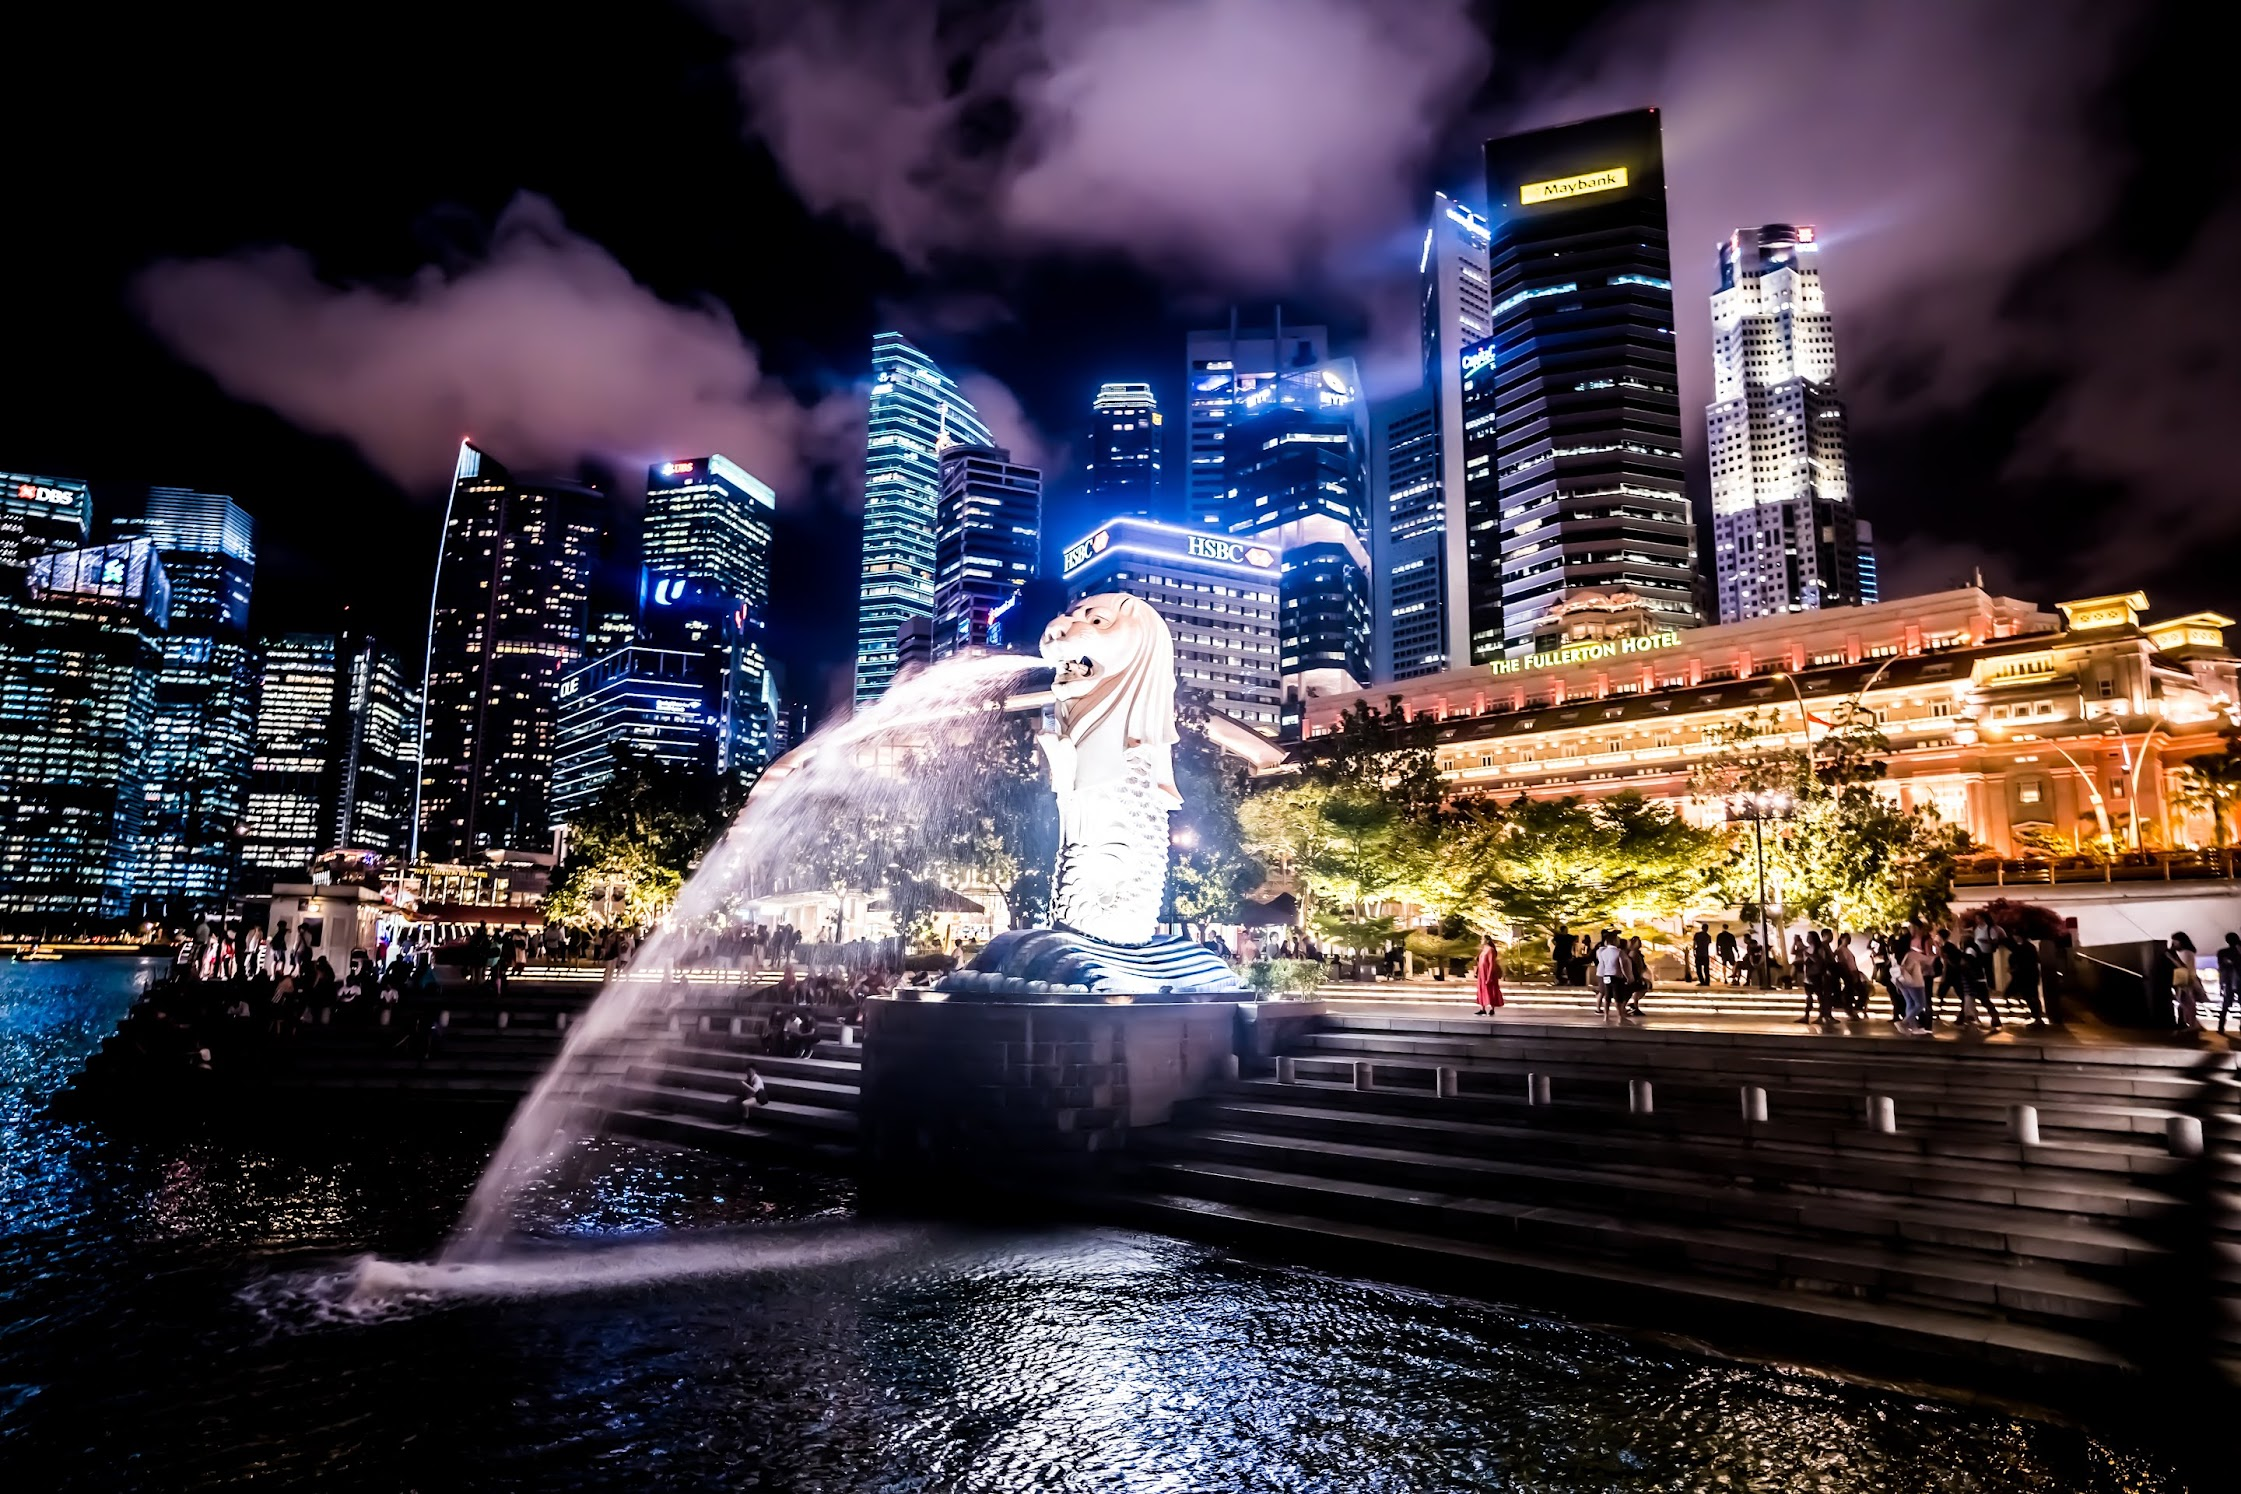 Singapore merlion evening2